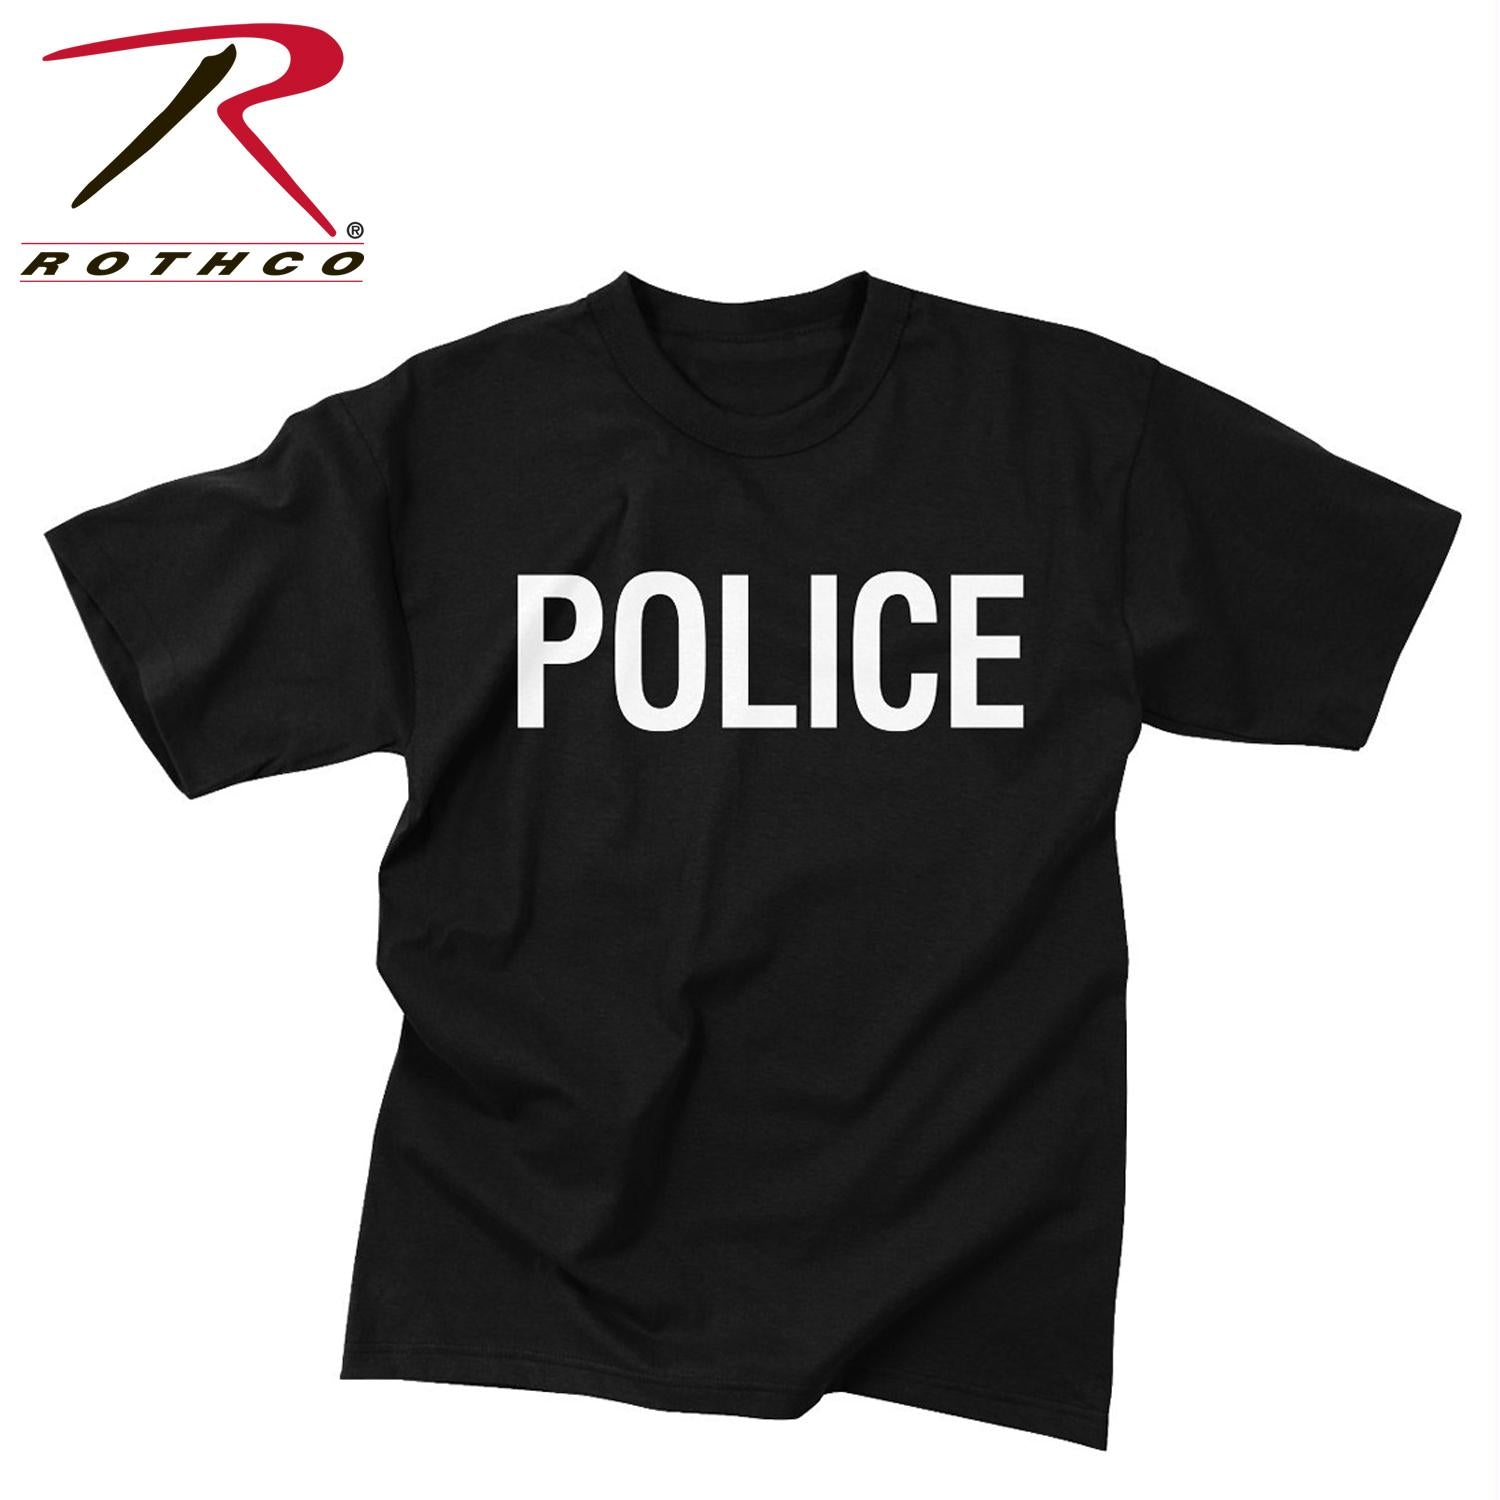 Rothco 2-Sided Police T-Shirt - XL